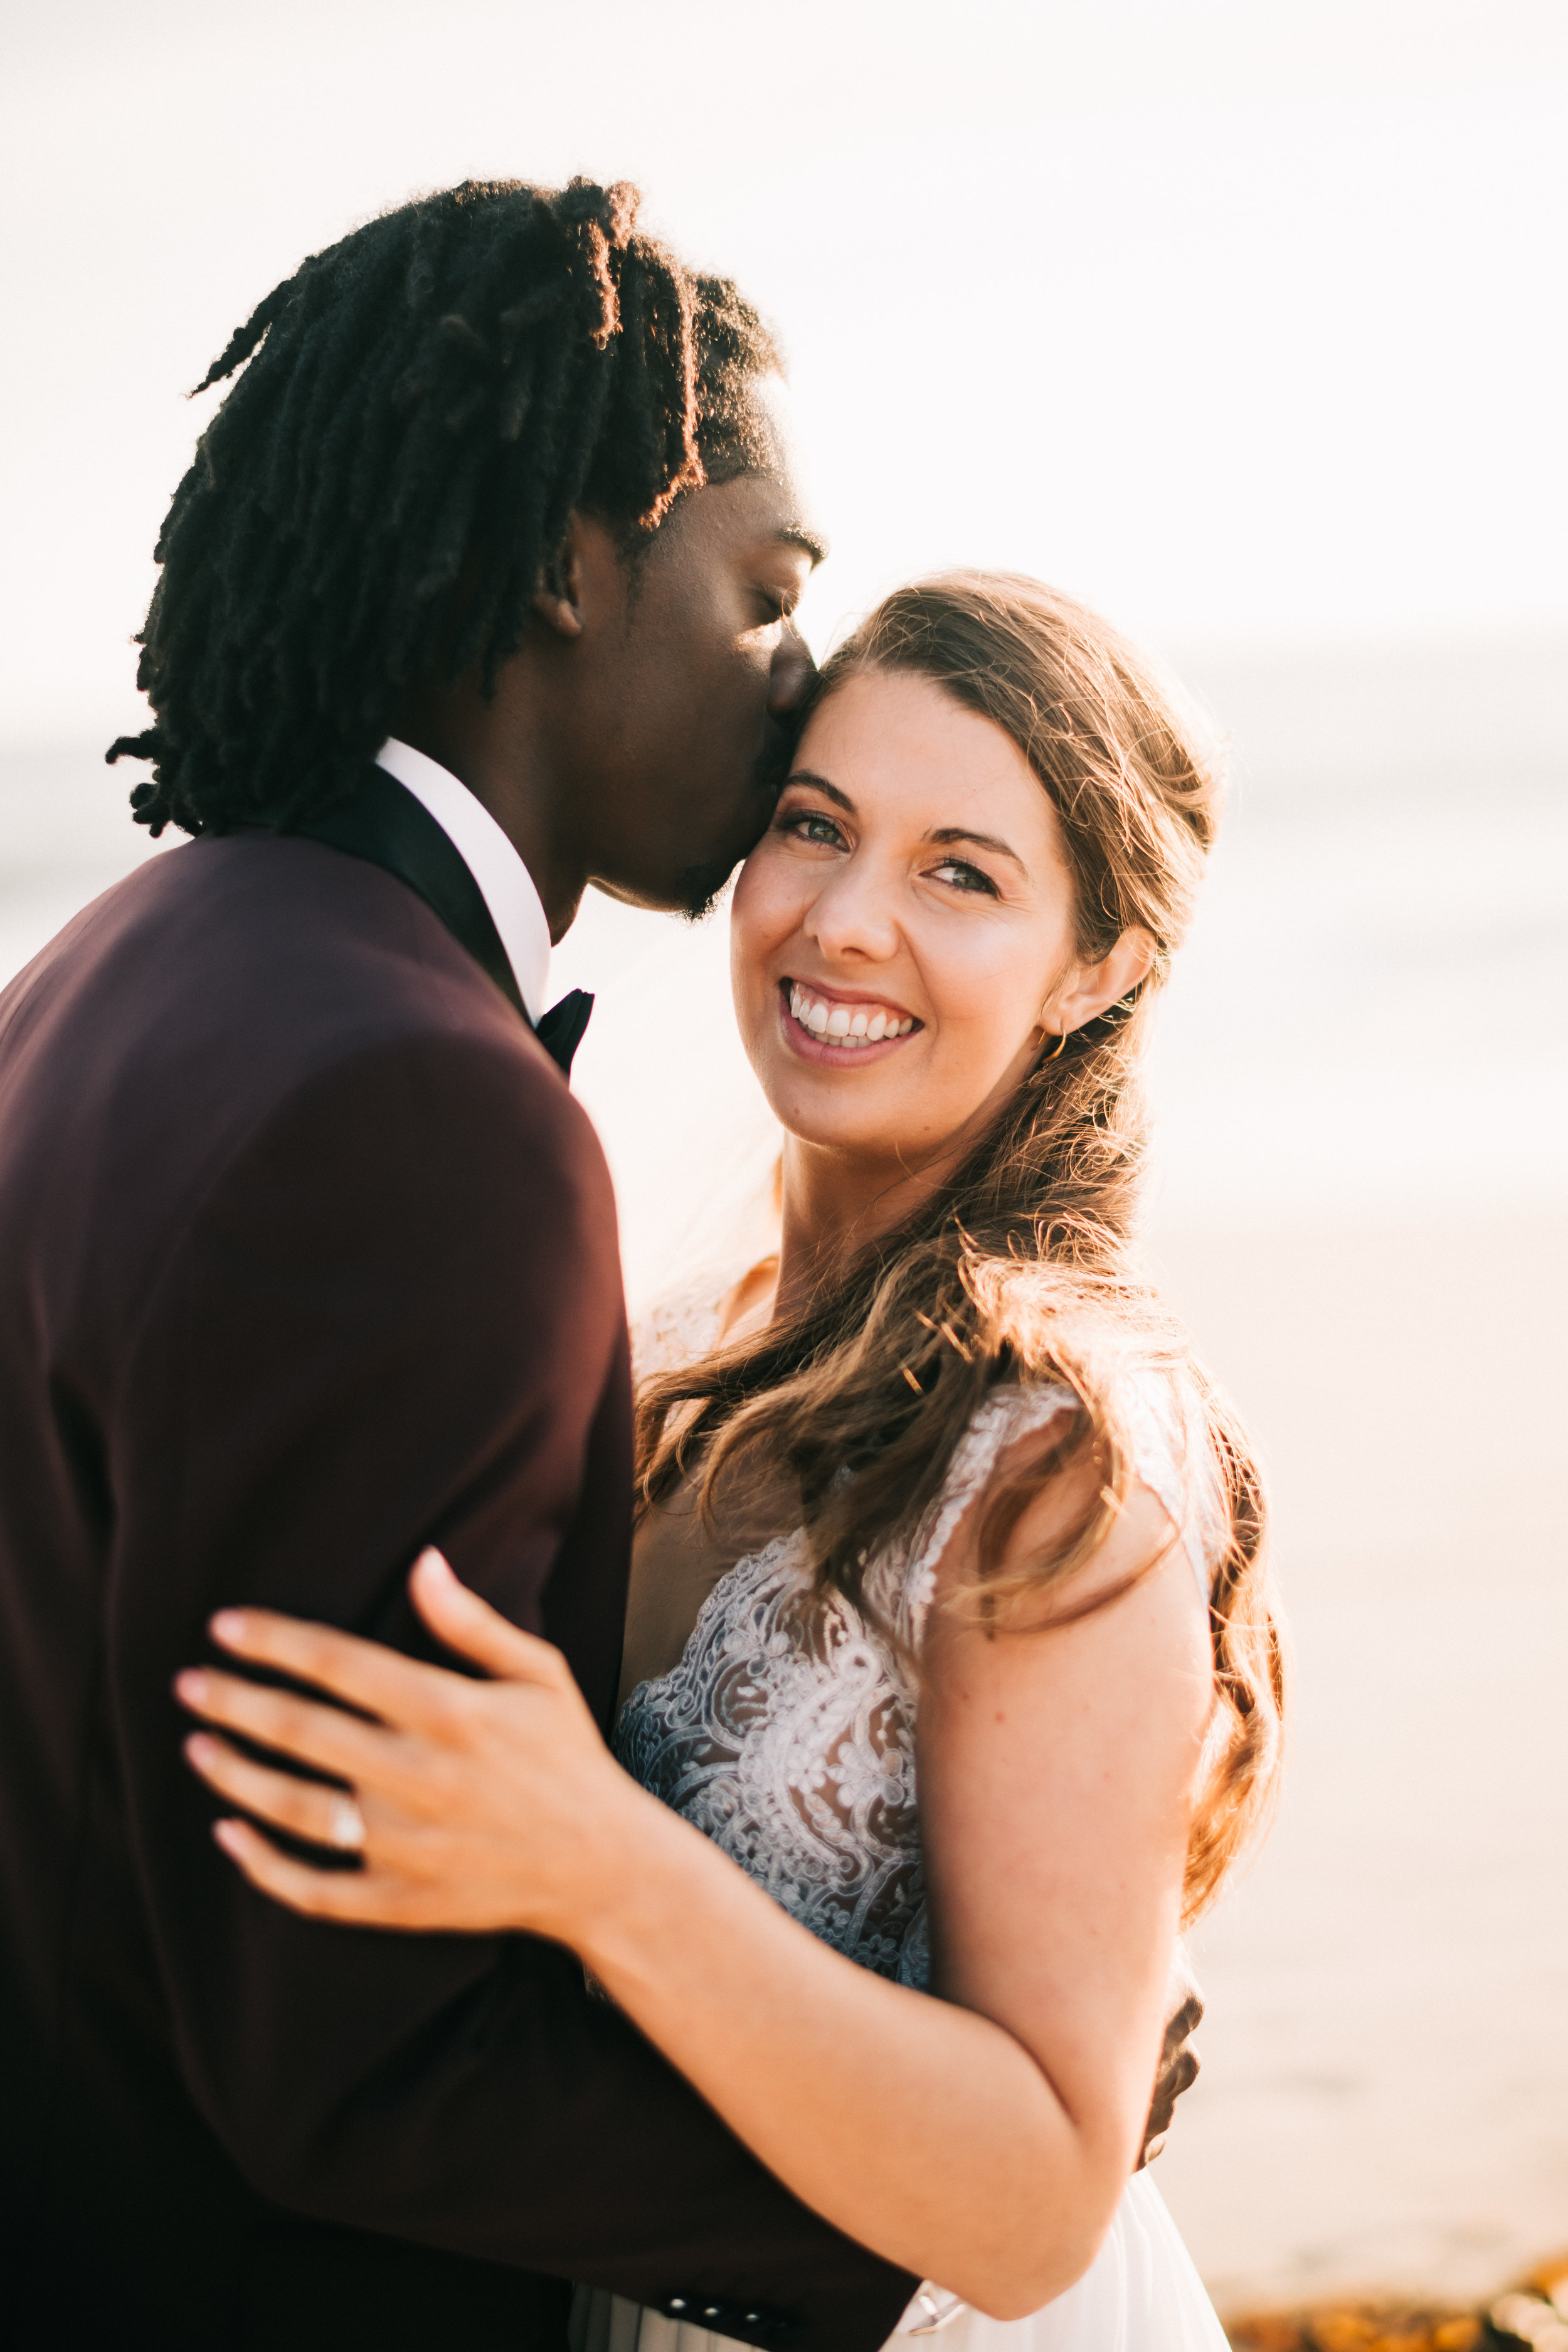 southern california laguna beach salt creek beach los angeles socal boho bay area akland san francisco engagement wedding nontraditional fun creative eclectic photographer magic-835.jpg